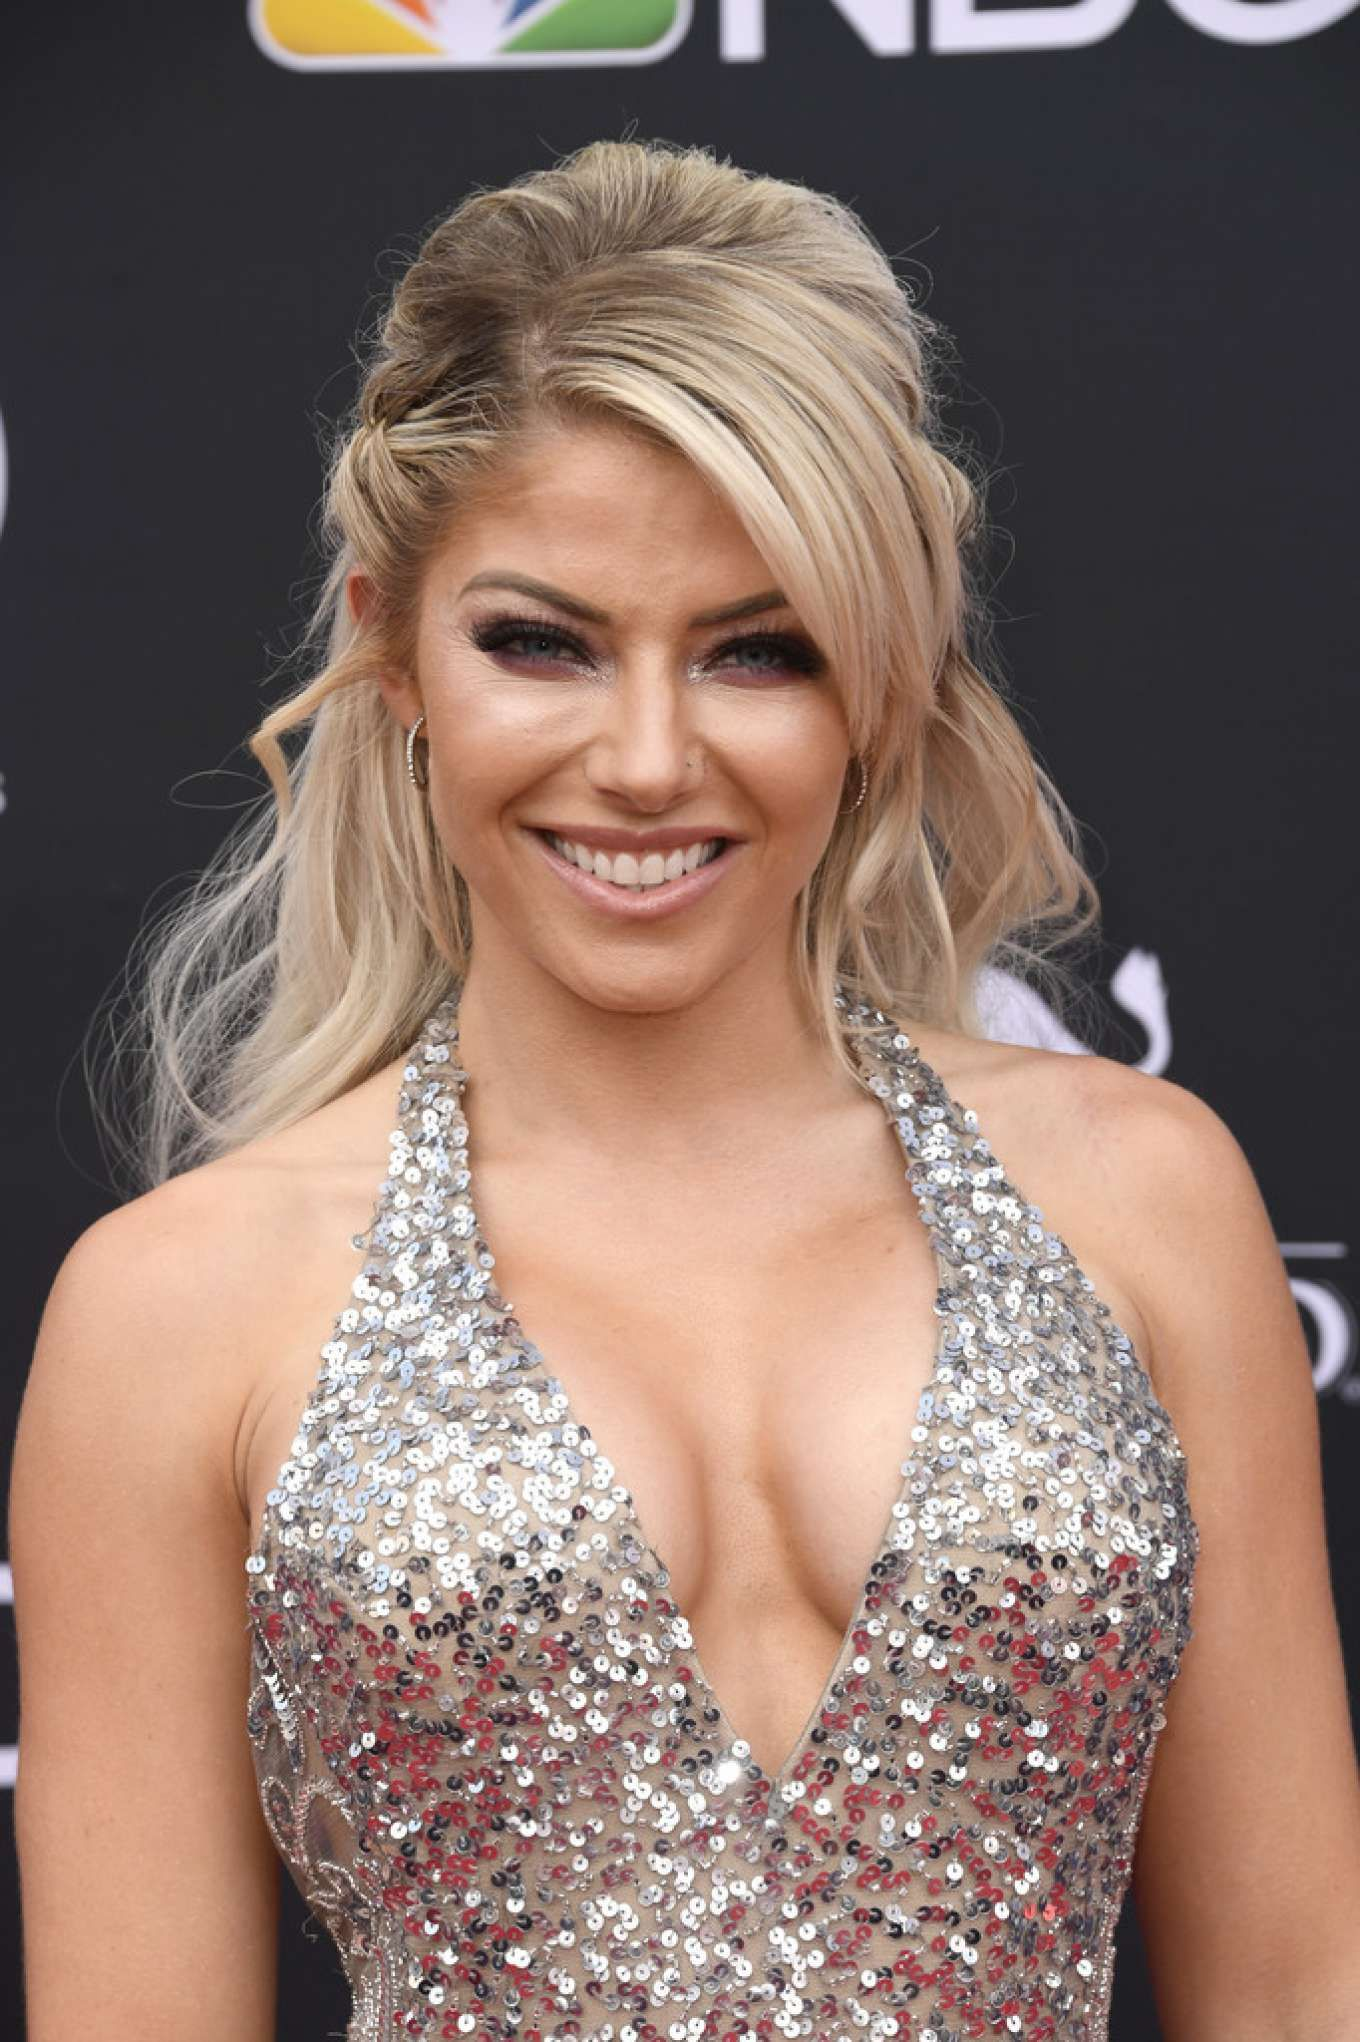 Alexa Bliss Encourages WWE Fan Suffering From Eating Disorder 2